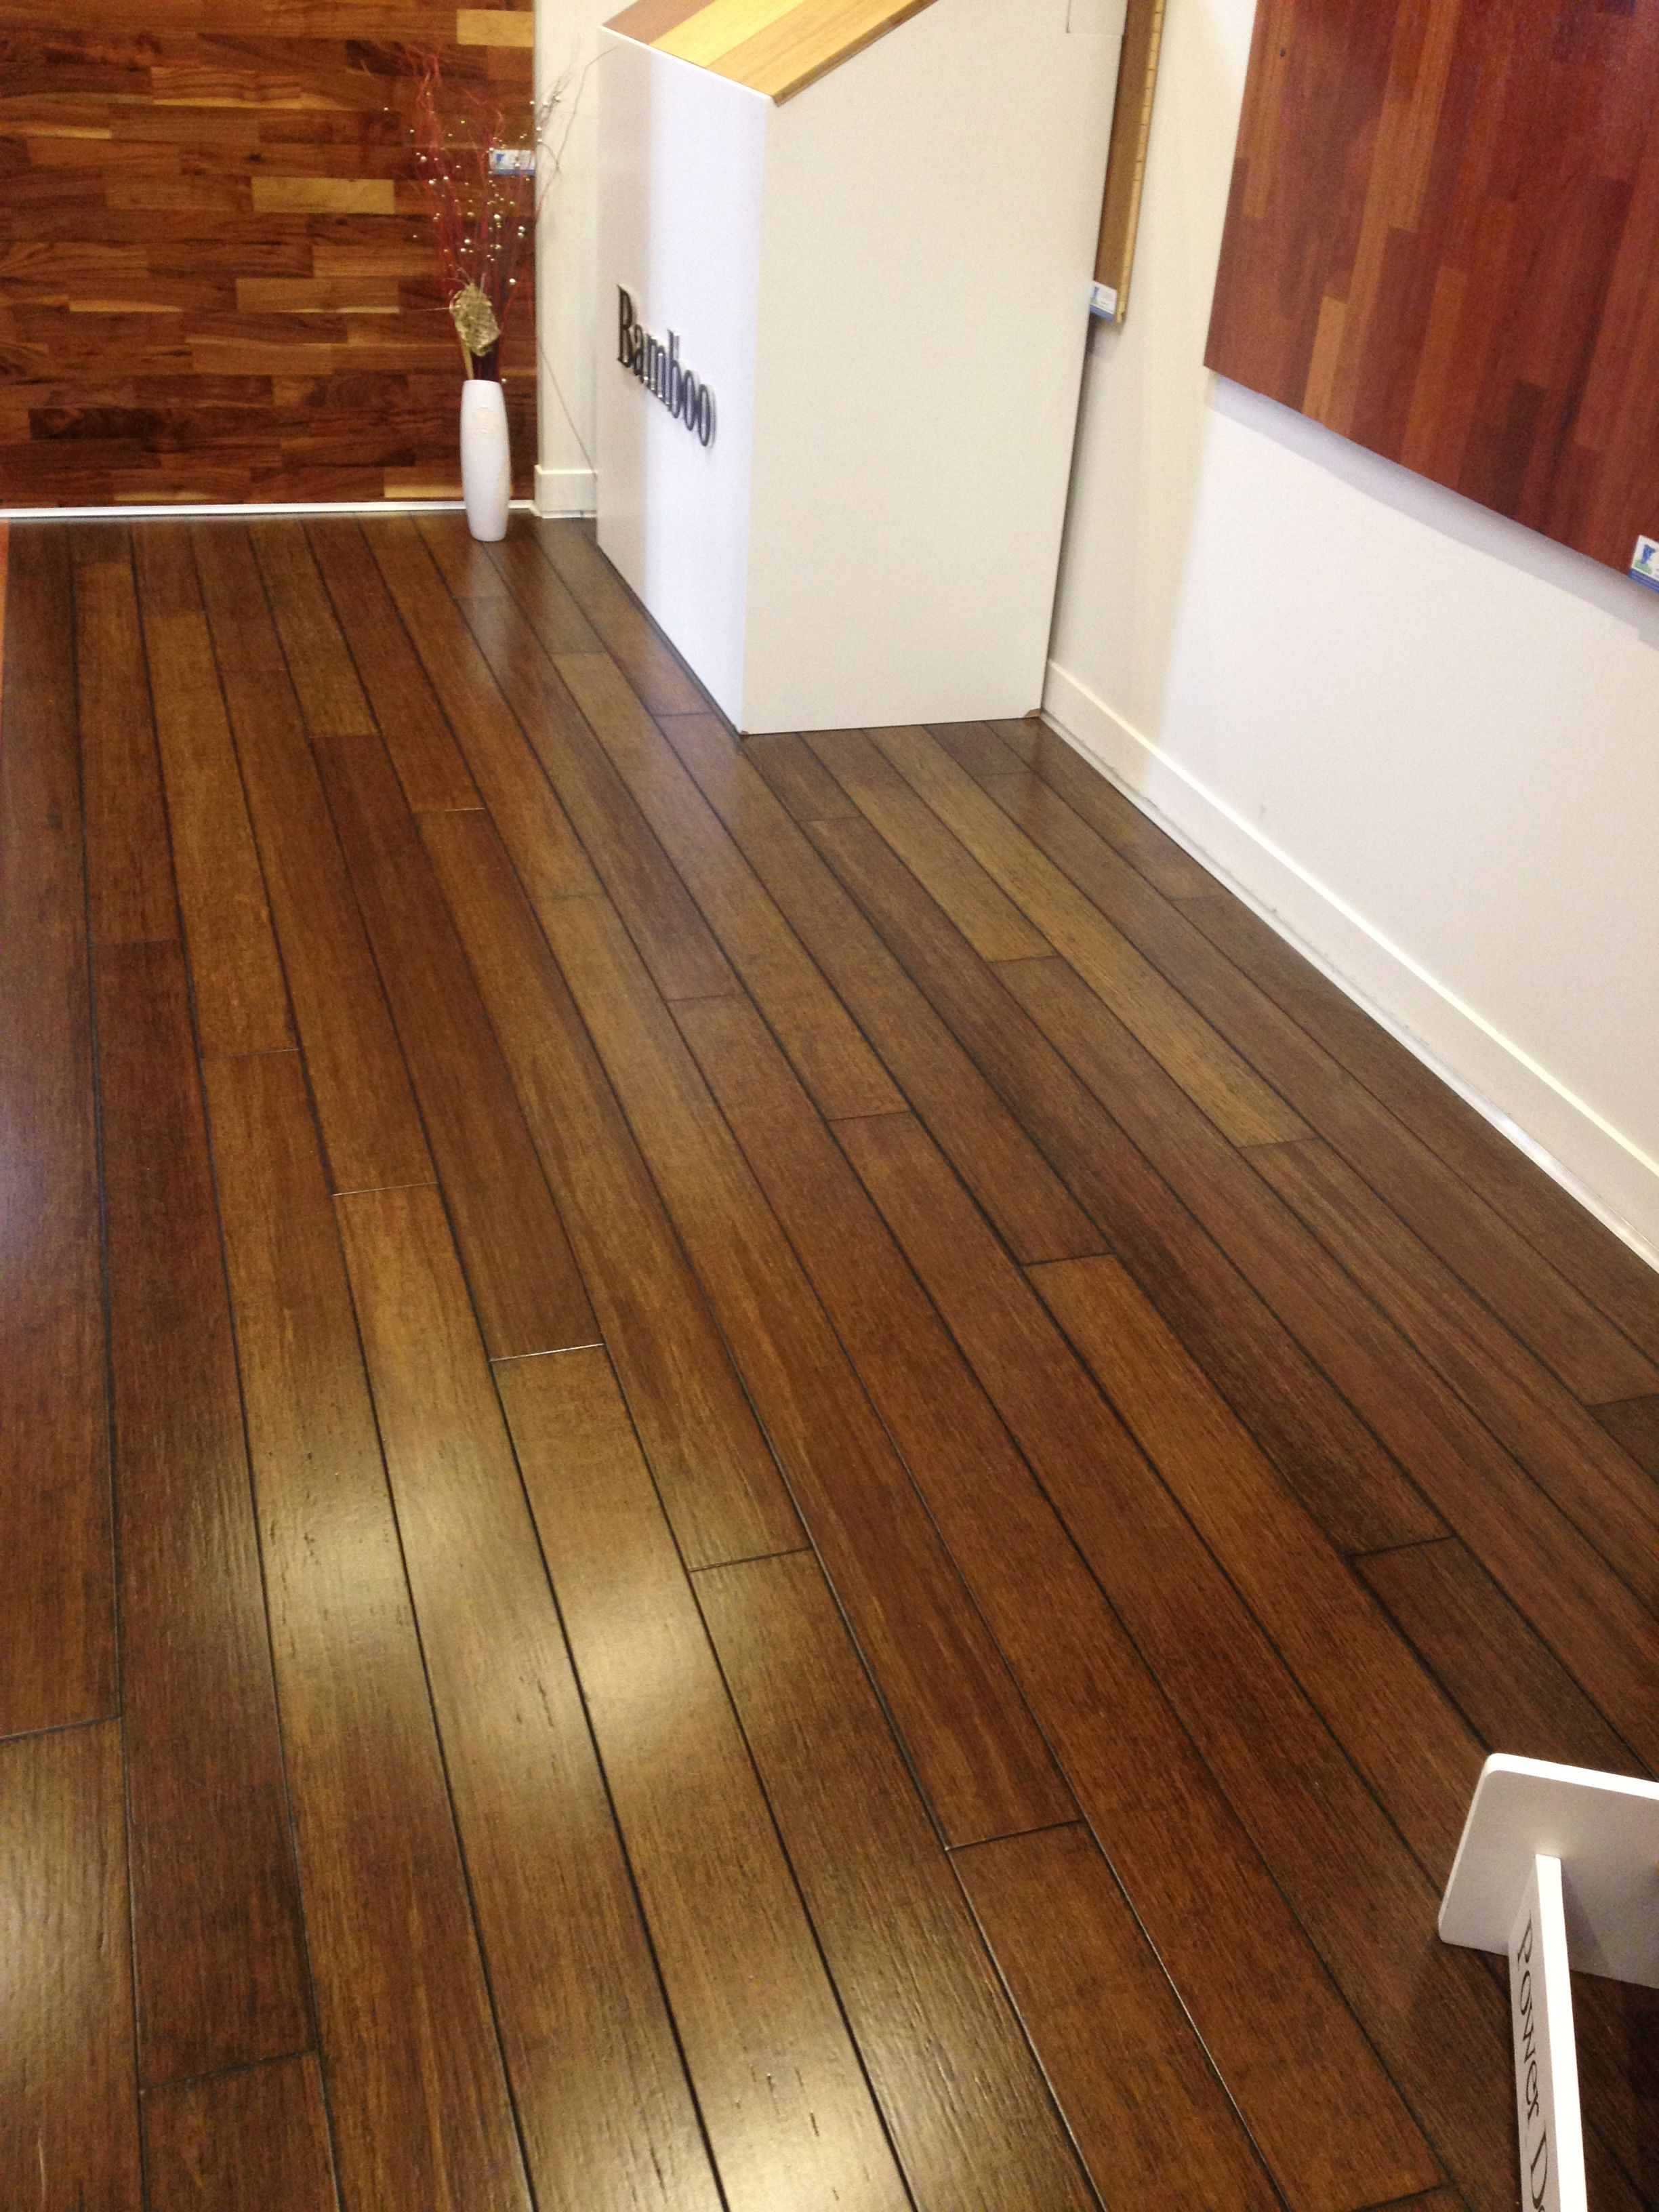 Dekor Ltd Provides Premium Range Of Bamboo Flooring At Feasible Cost In Nz